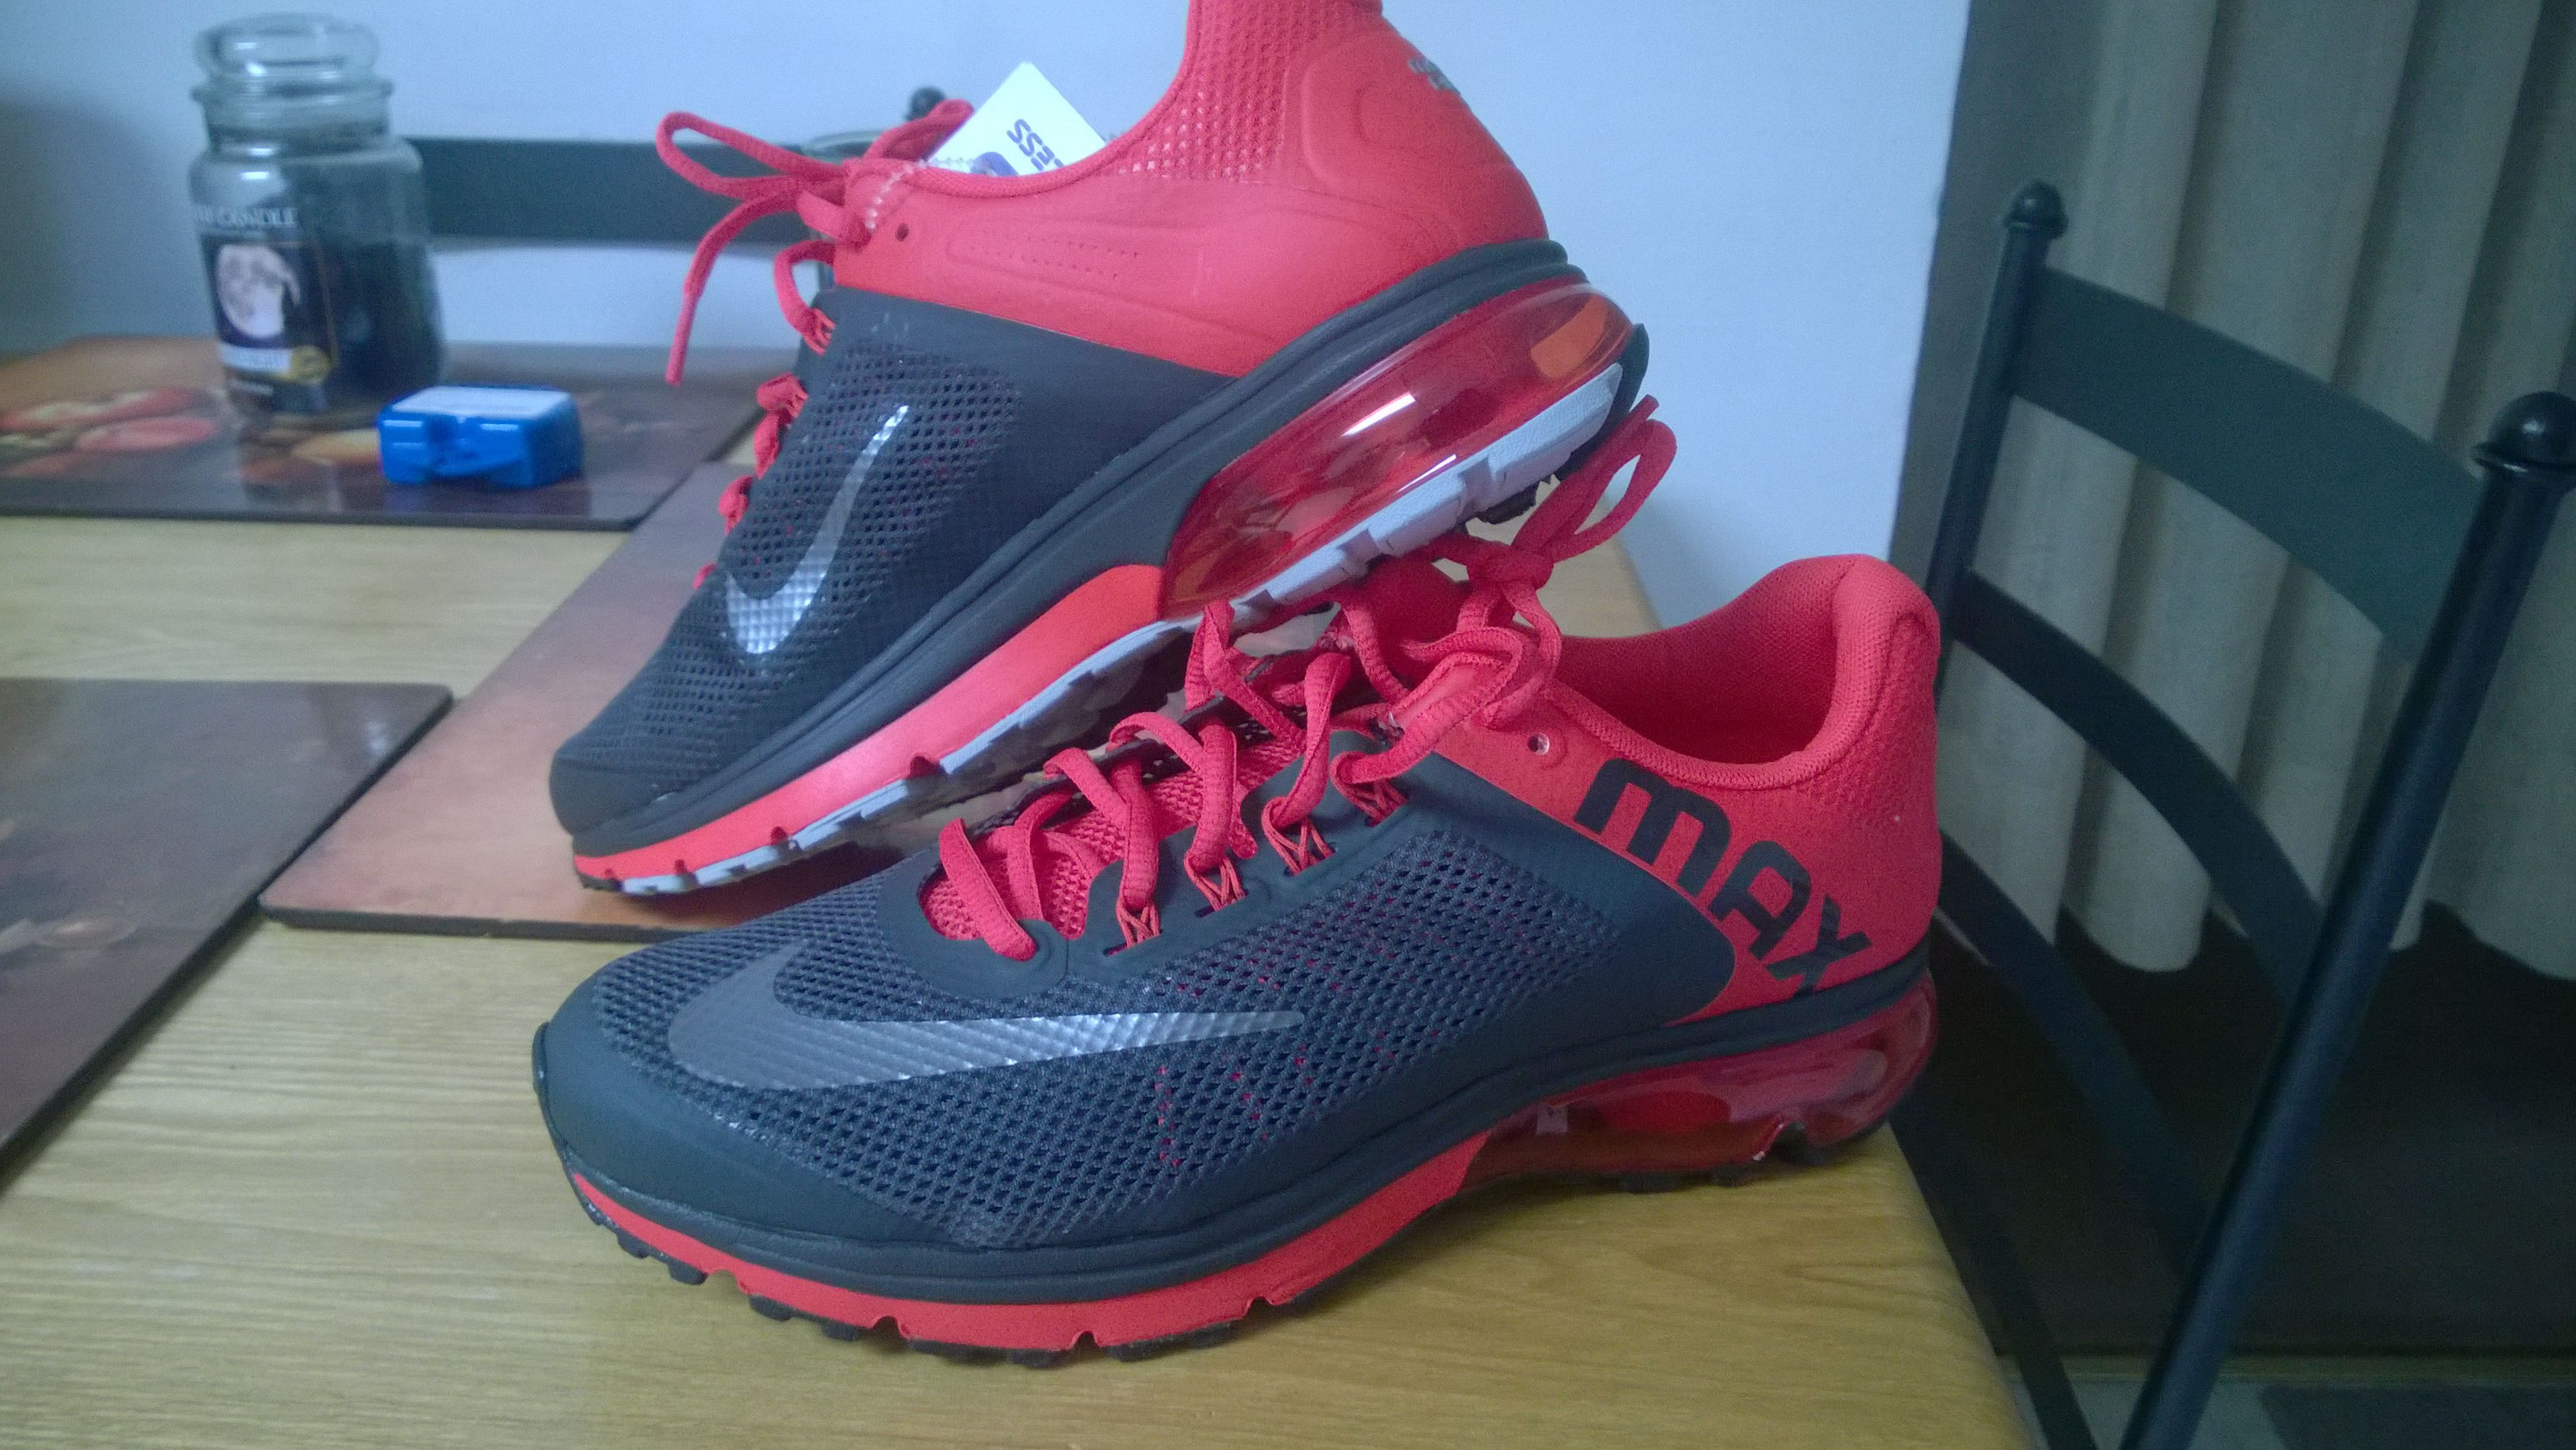 Running shoe, Nike Air max from Ross